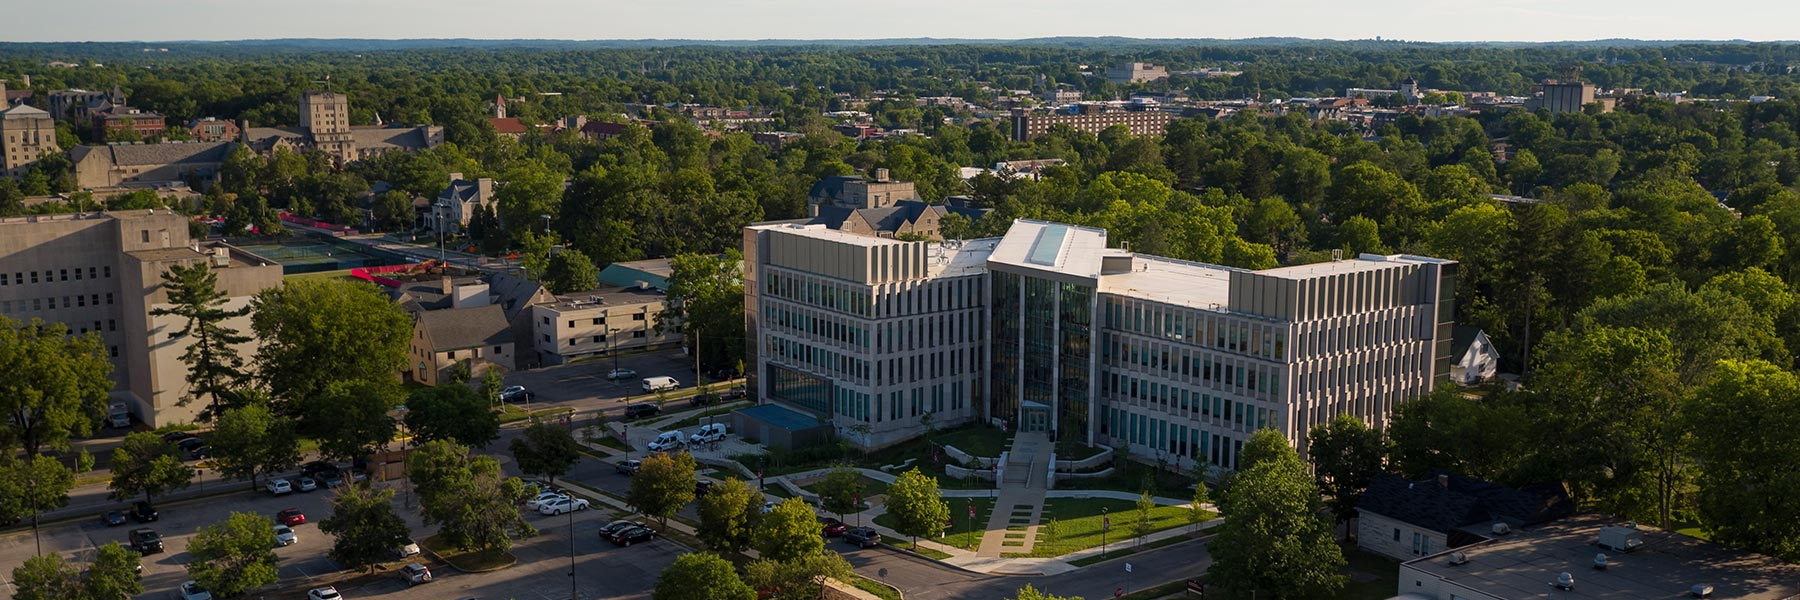 An aerial view of Luddy Hall, an academic building on the IU Bloomington Campus